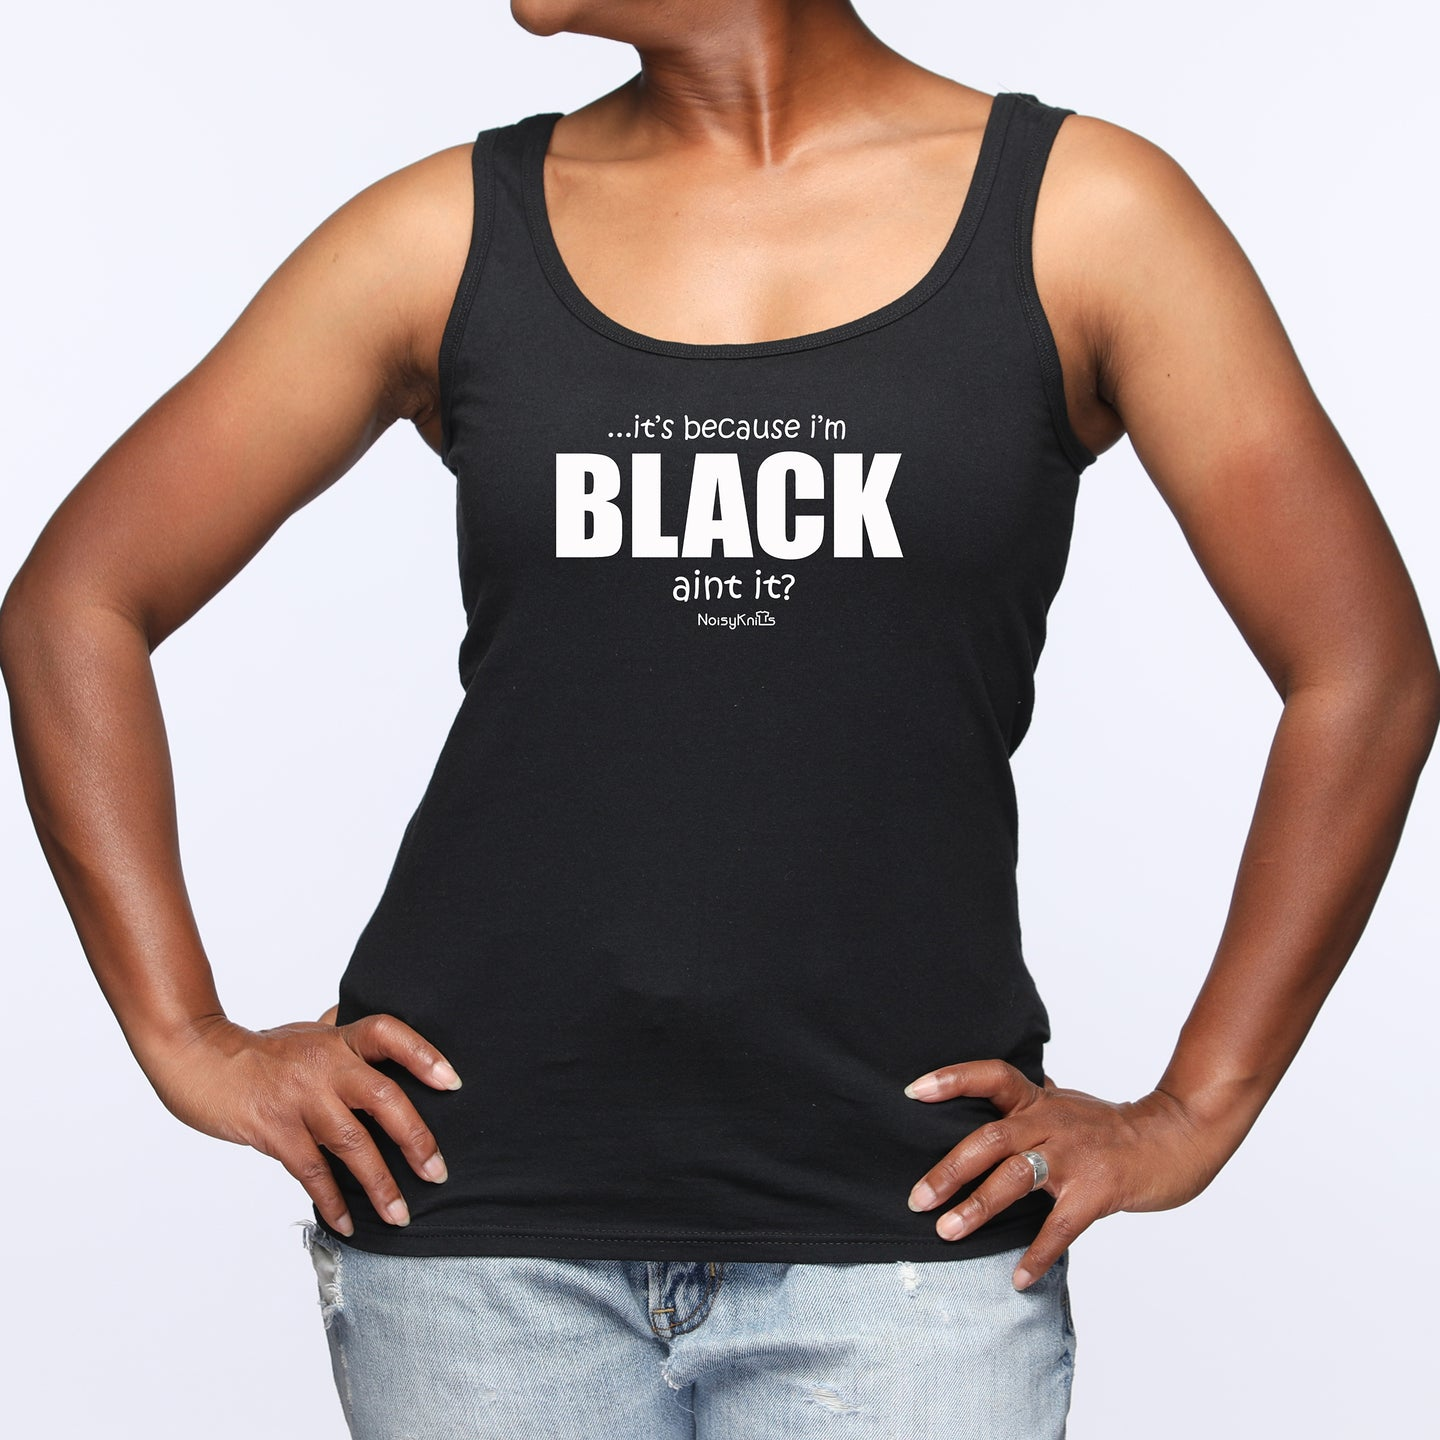 Because I'm Black Tank